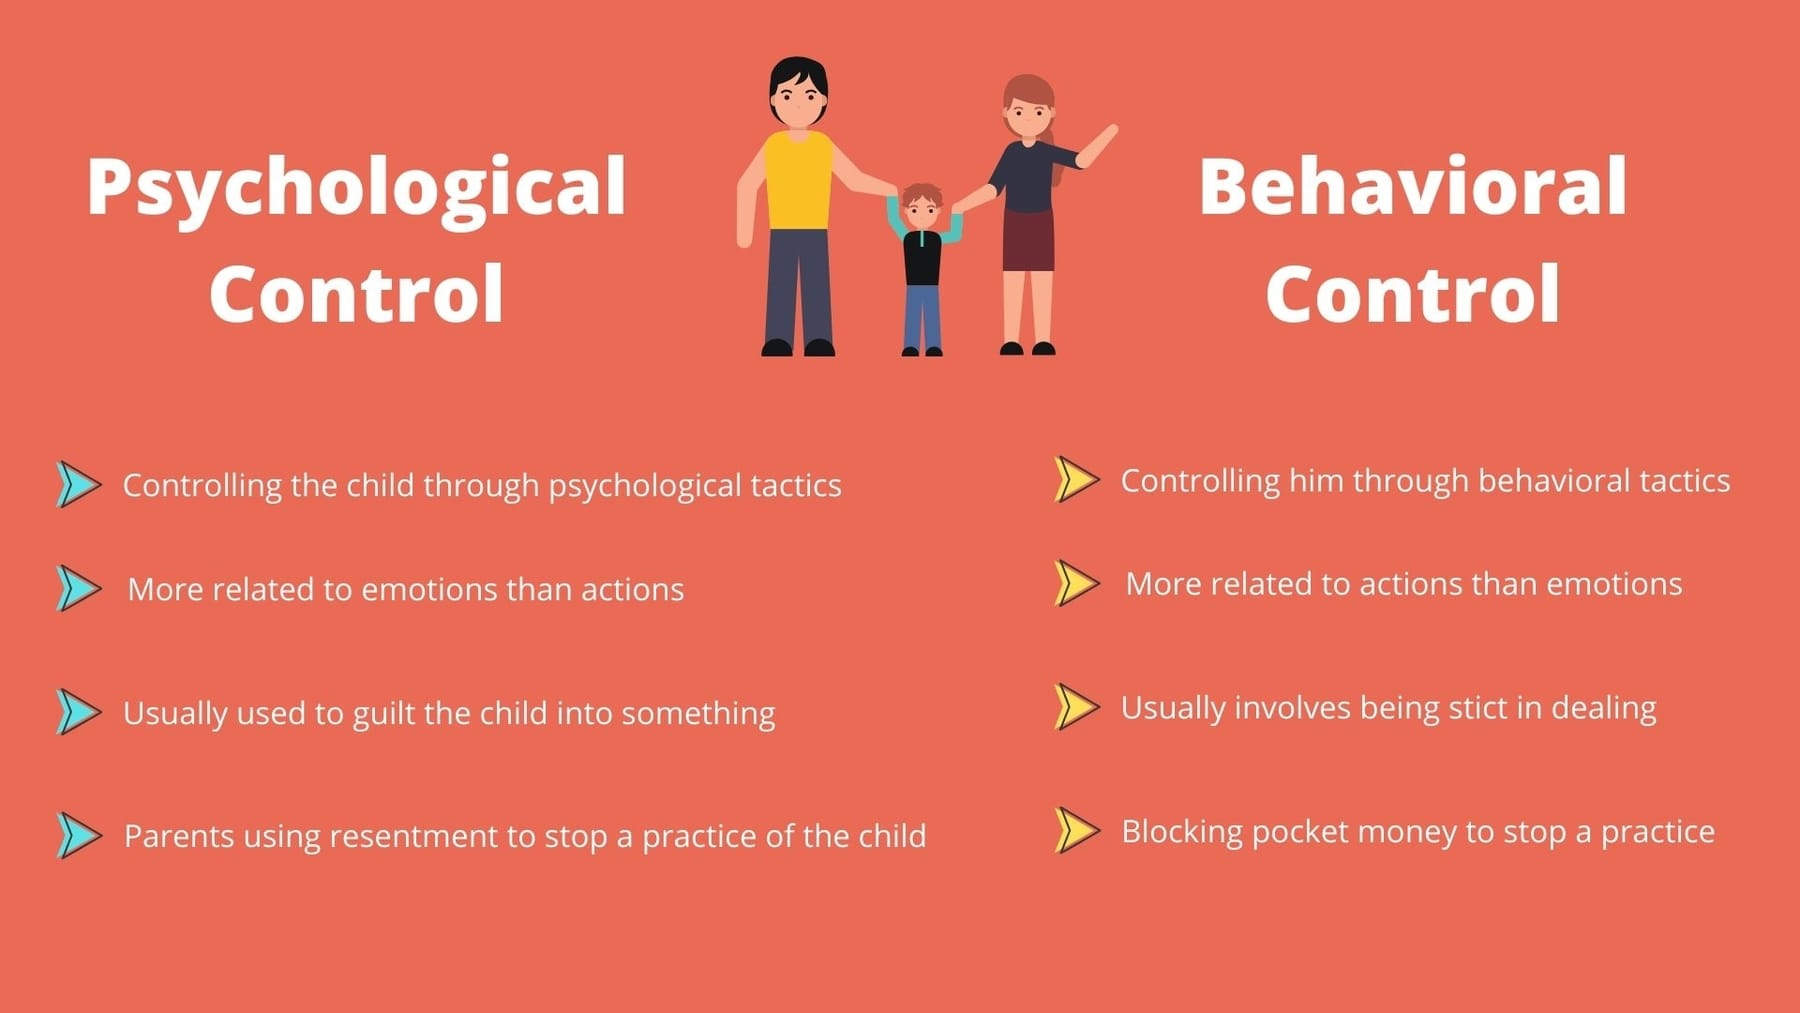 Types of Control by parents; Psychological control and Behavioral control.